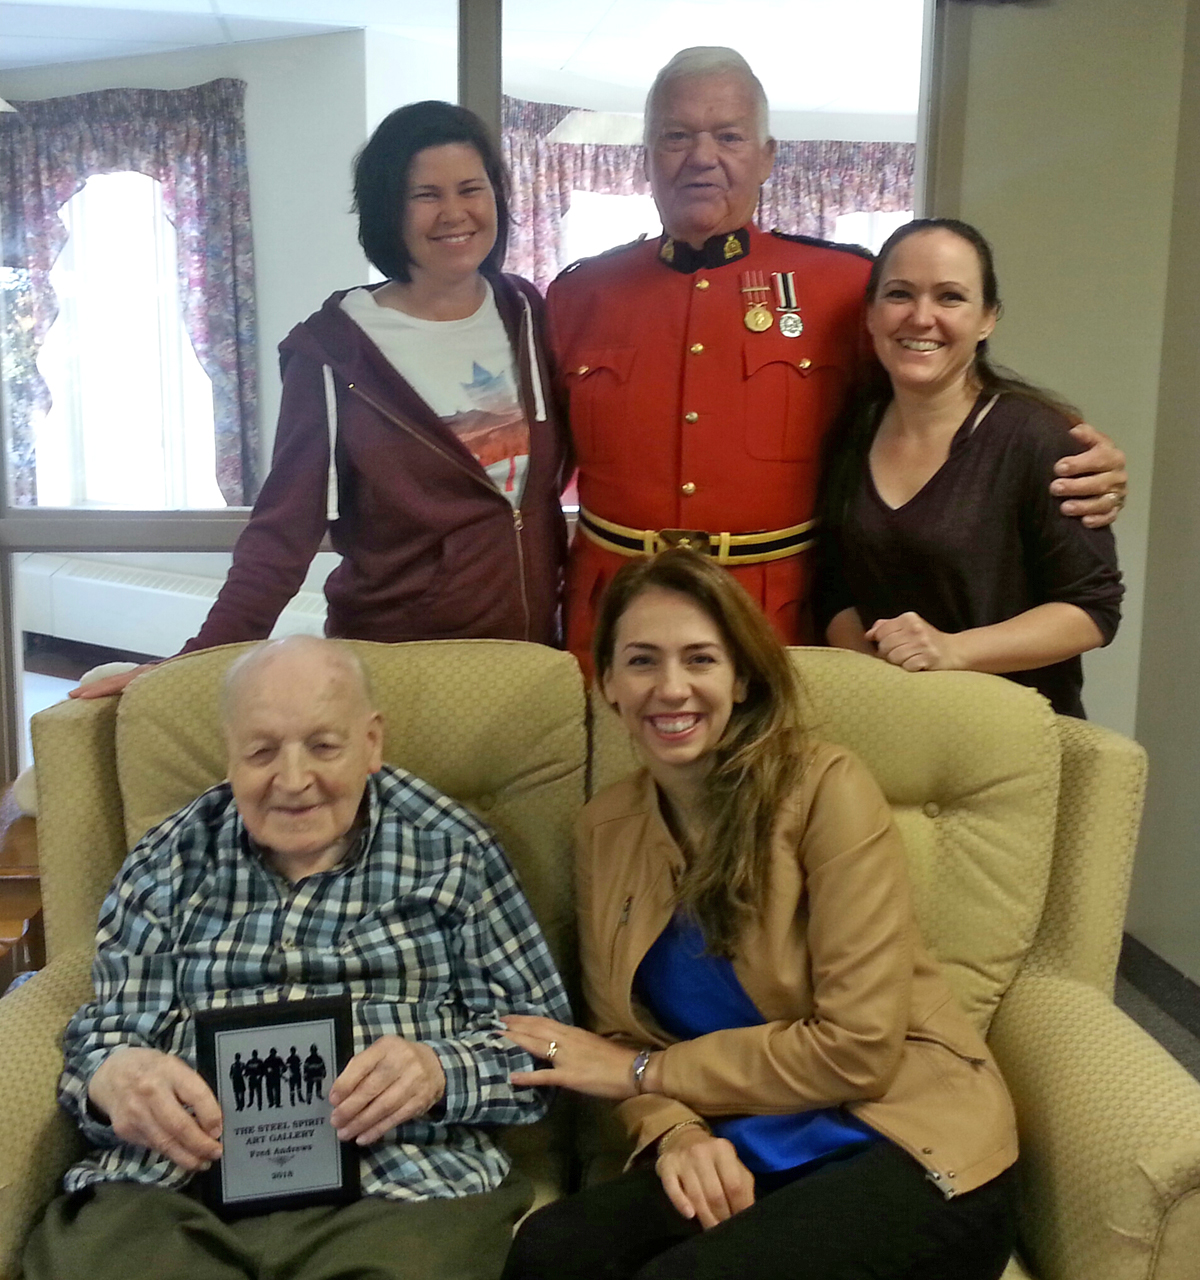 Members of The Steel Spirit meet with poet Fred Andrews at Roberta Place Retirement Lodge long-term care facility in Barrie, ON. Back row from left: Trisha MacLeod, Colin Partridge, and Lee-Ann LeMesurier. Front Row: Andrews and The Steel Spirit founder Barbara Brown. Photo credit: Roberta Place